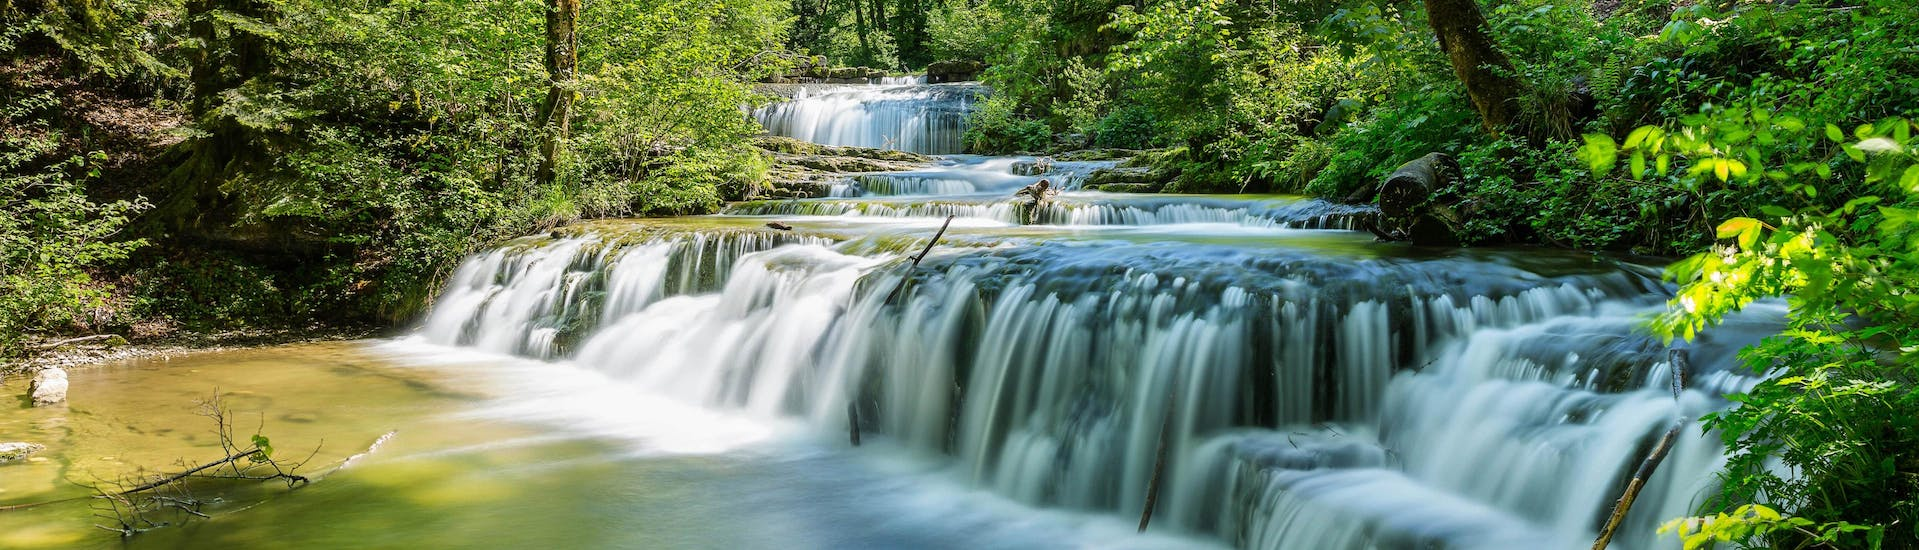 A magnificent waterfall in the heart of the Jura, a popular canyoning destination for families.